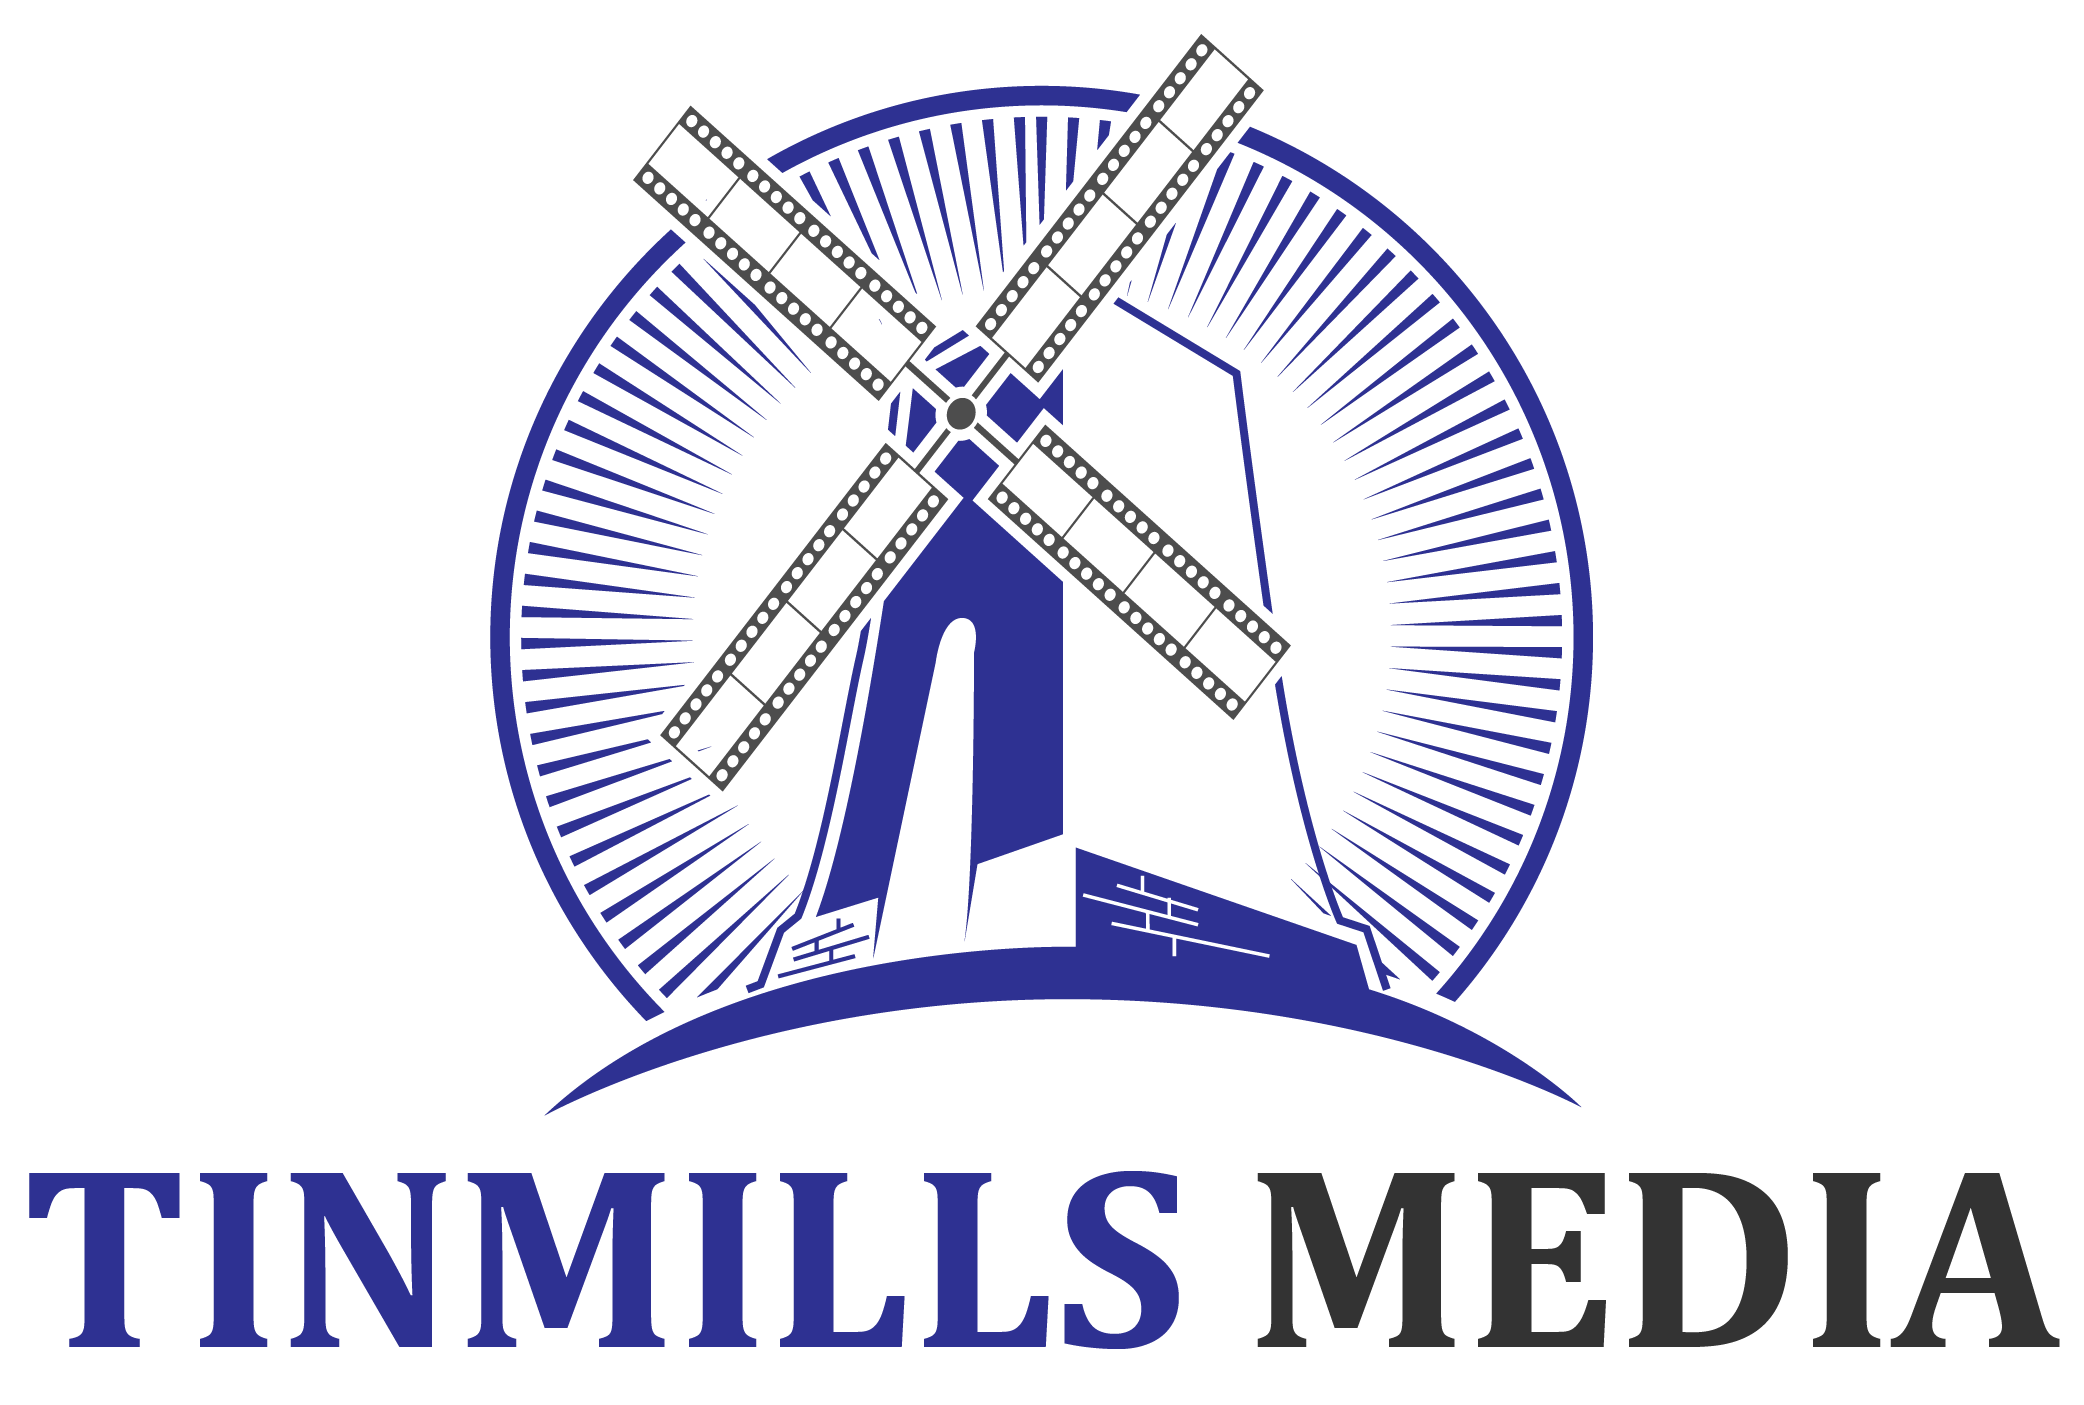 TinMills Website Builder